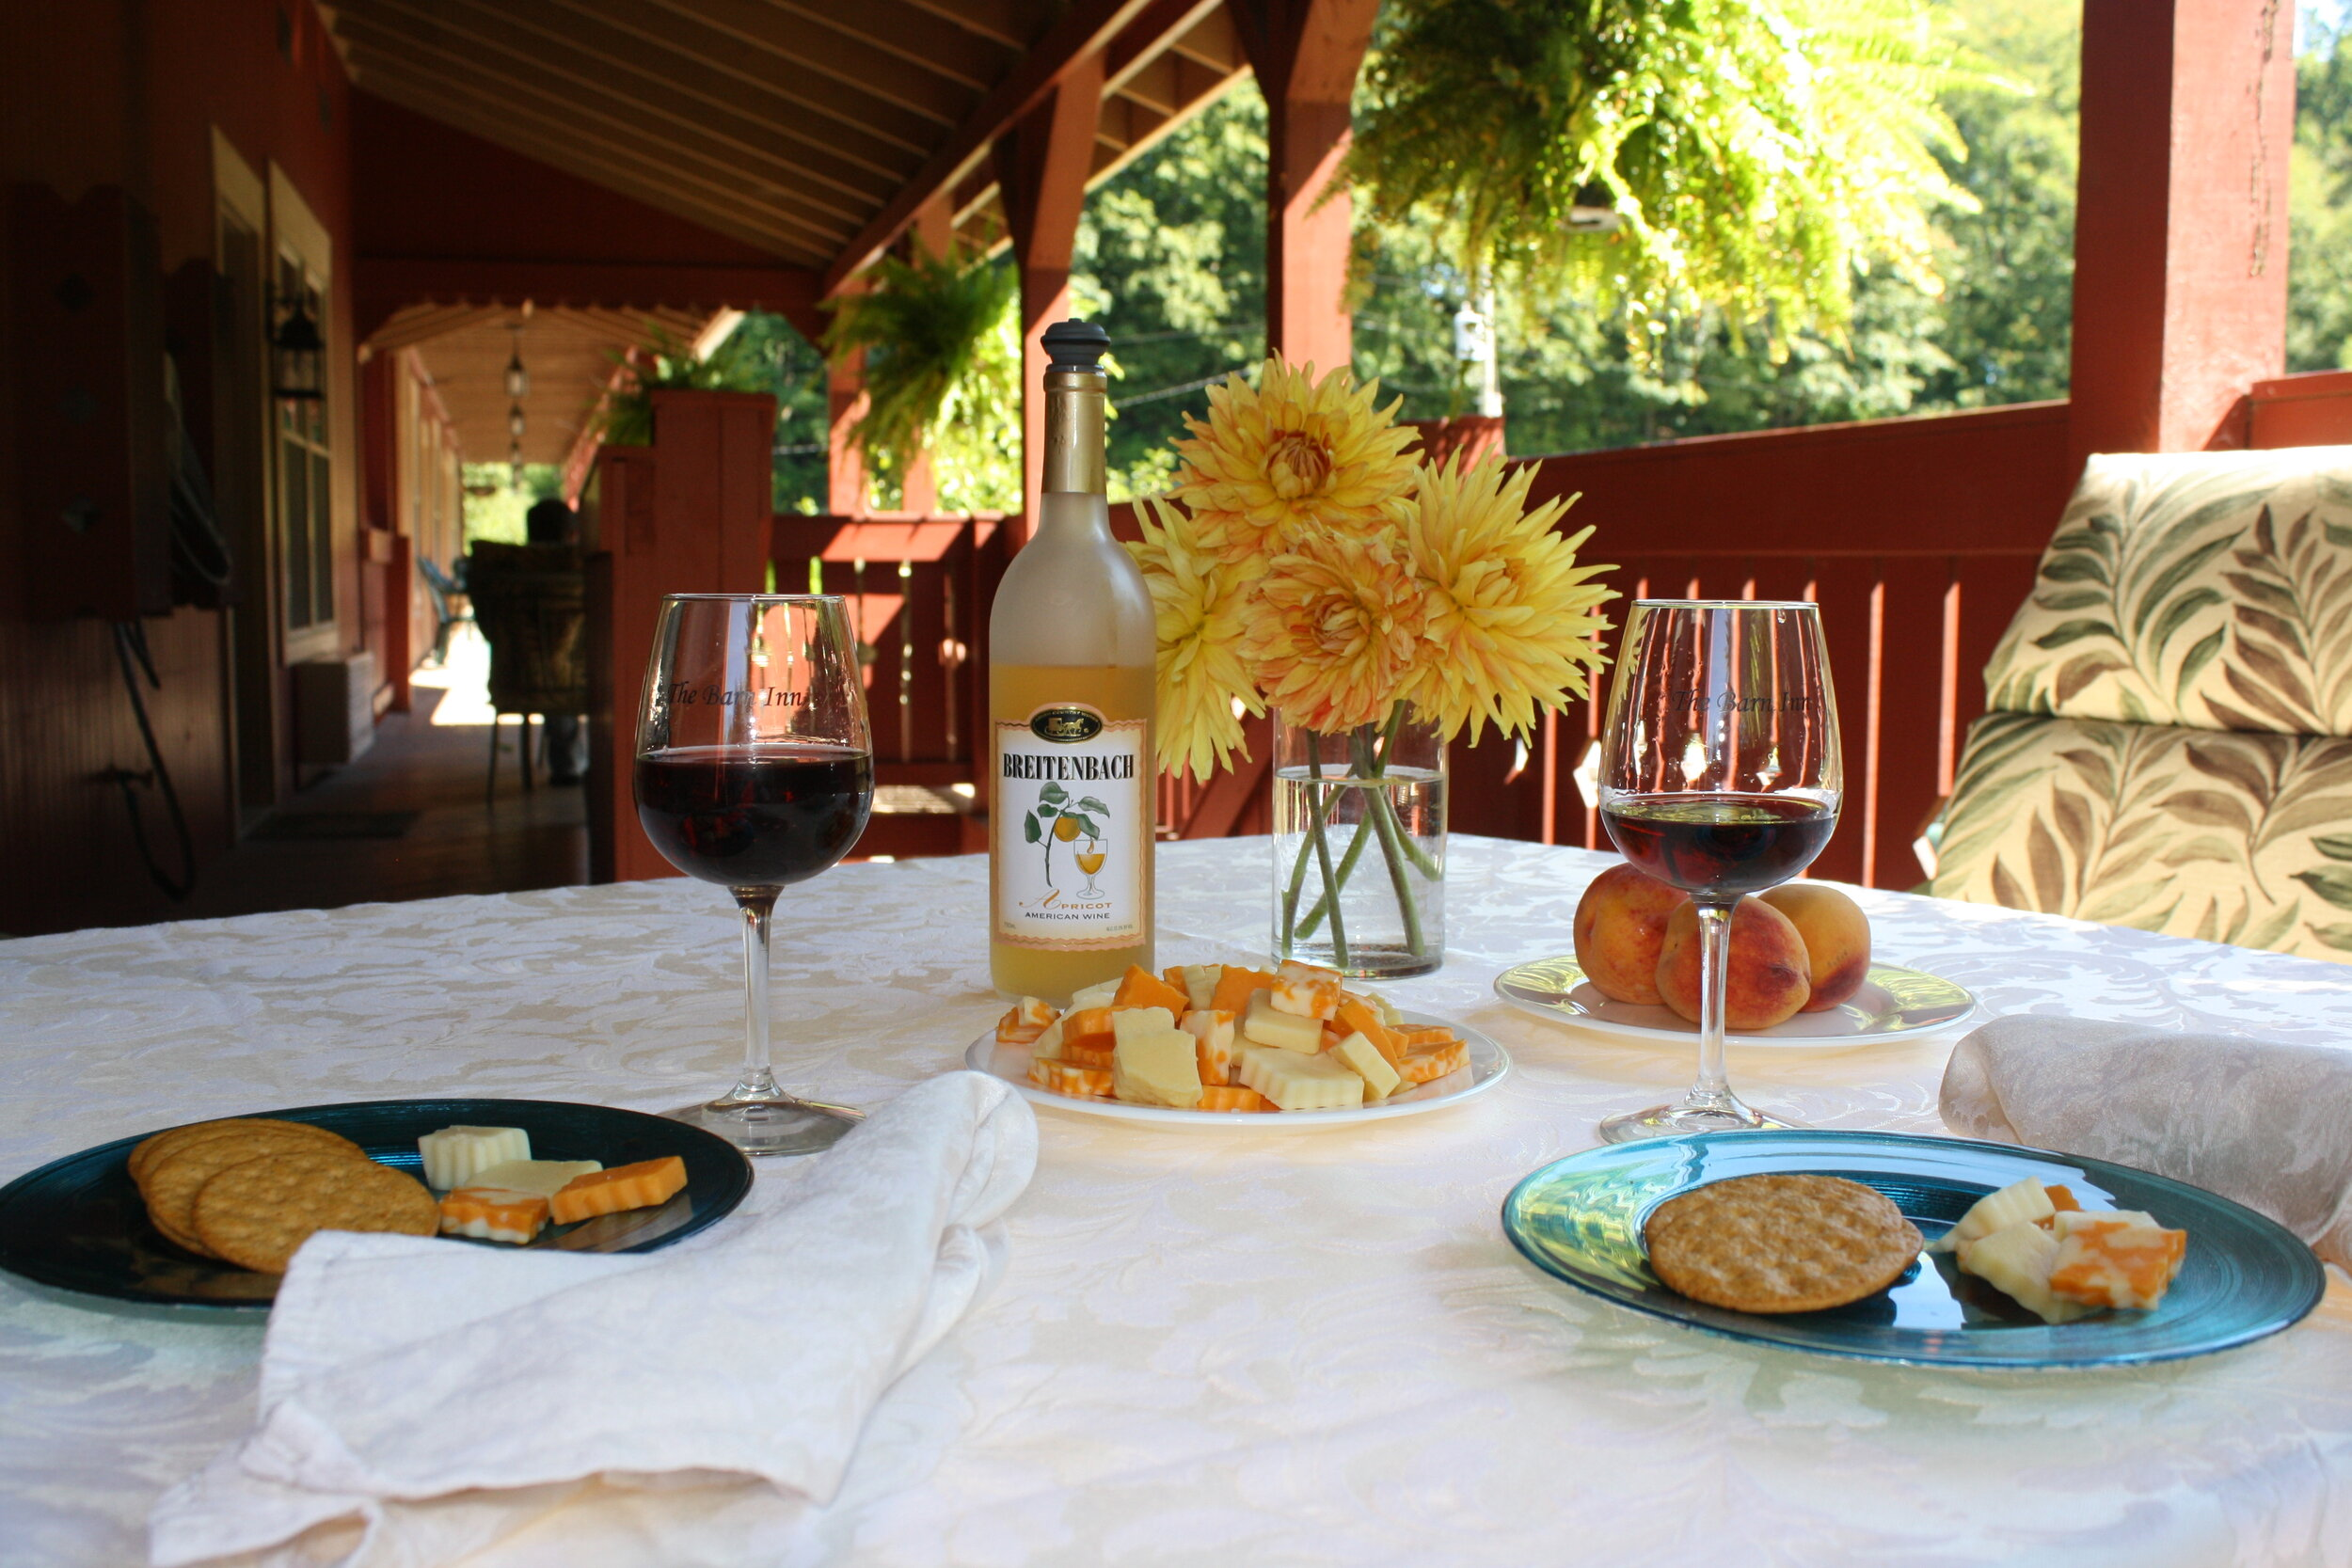 Wine and cheese on an outdoor deck with flowers